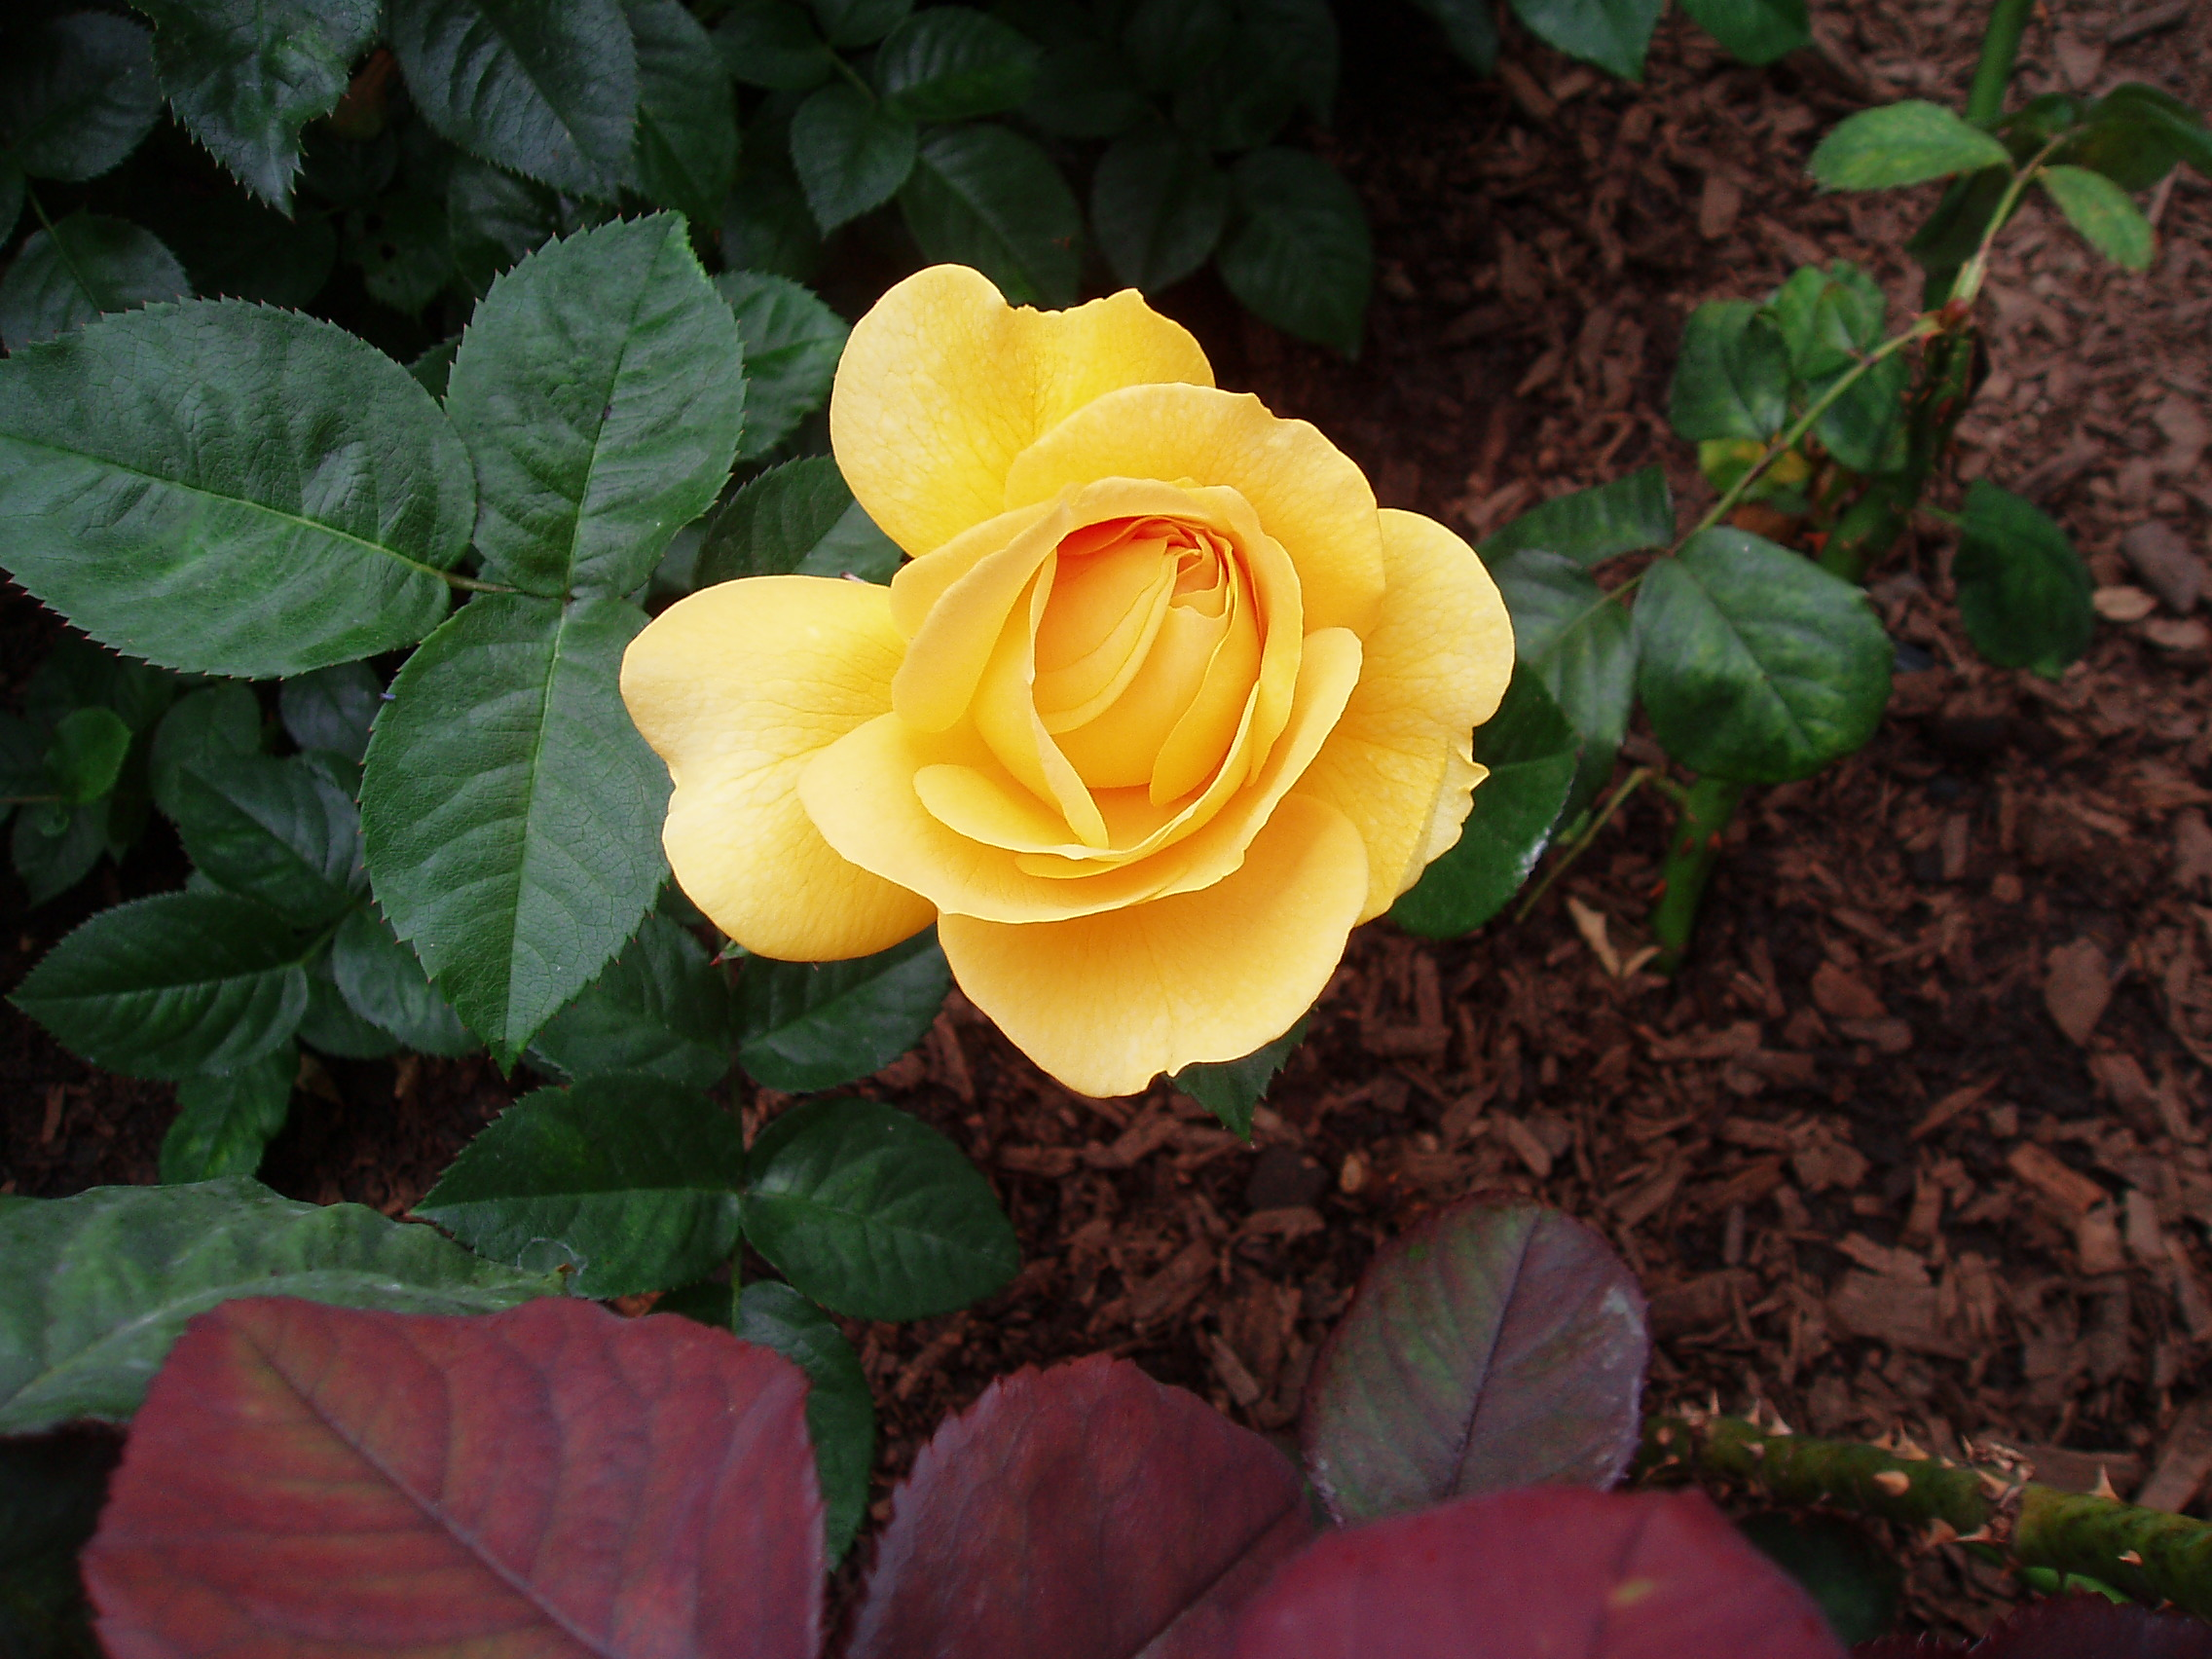 A yellow rose, one of hundreds of different types on display at the San Diego County Fair.